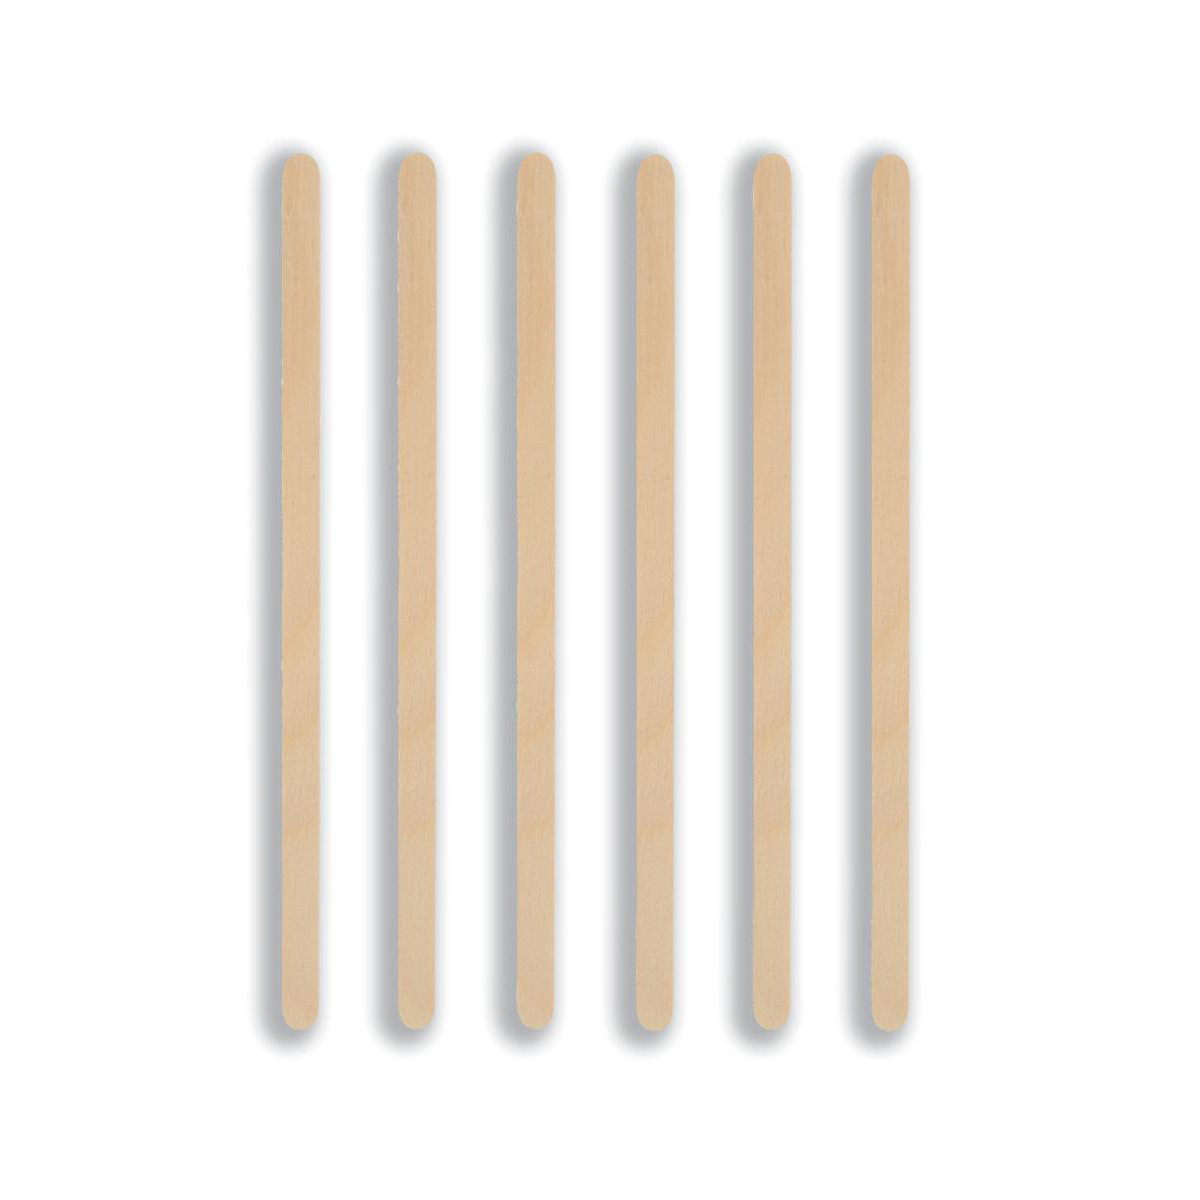 Drink Stirrers Wooden 190mm Ref 0512067 [Pack 1000]